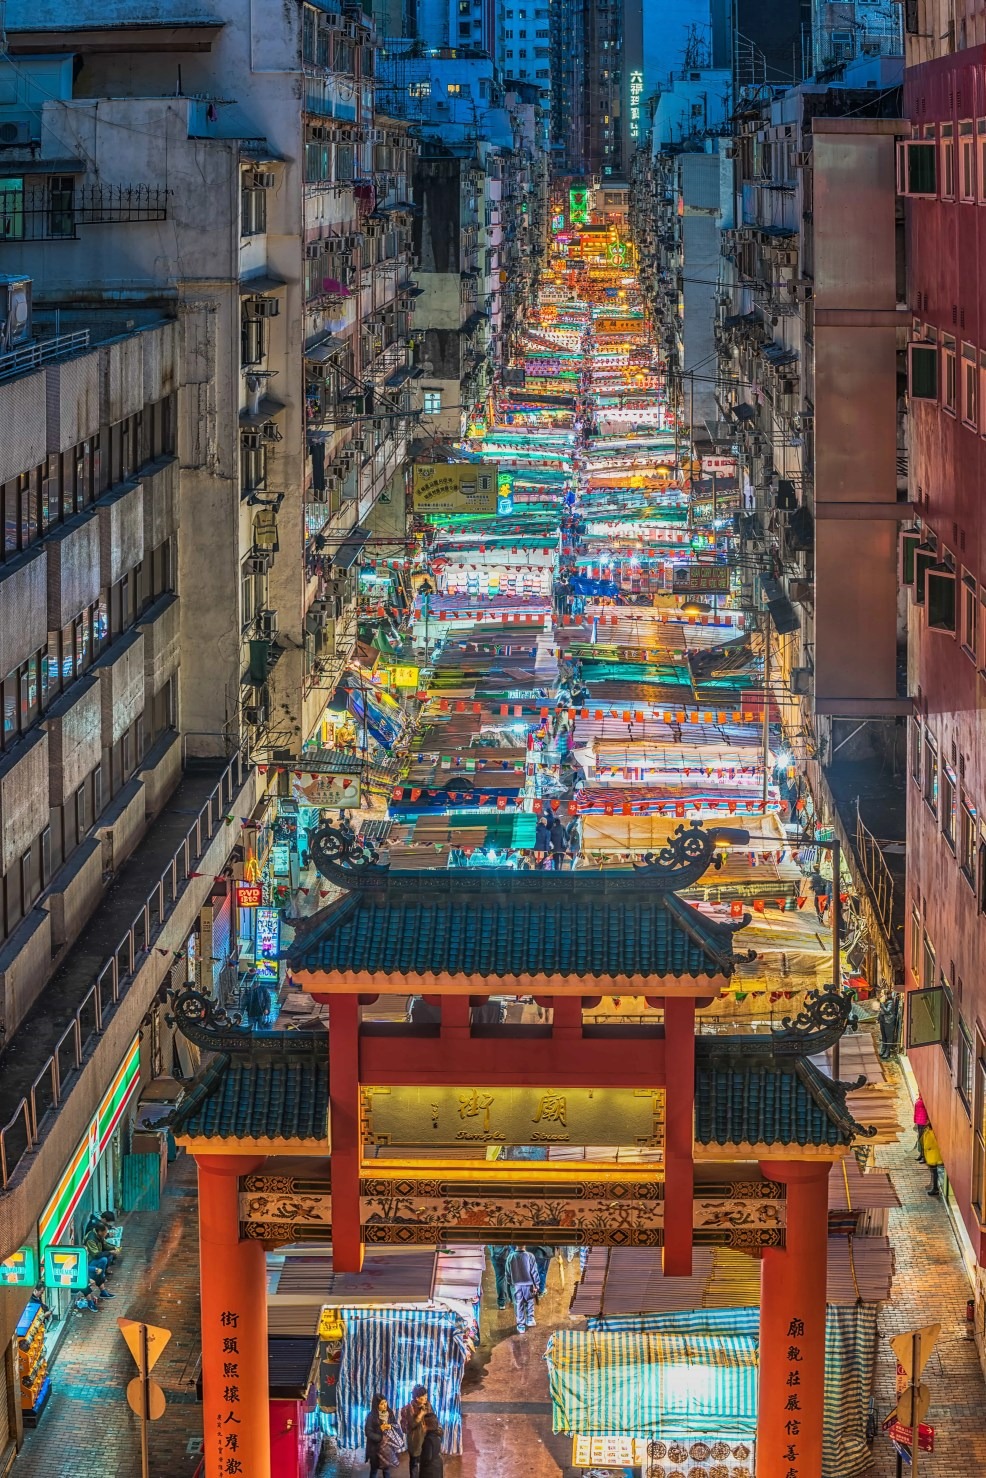 temple street market, instagrammable places in hong kong, Hong Kong itinerary